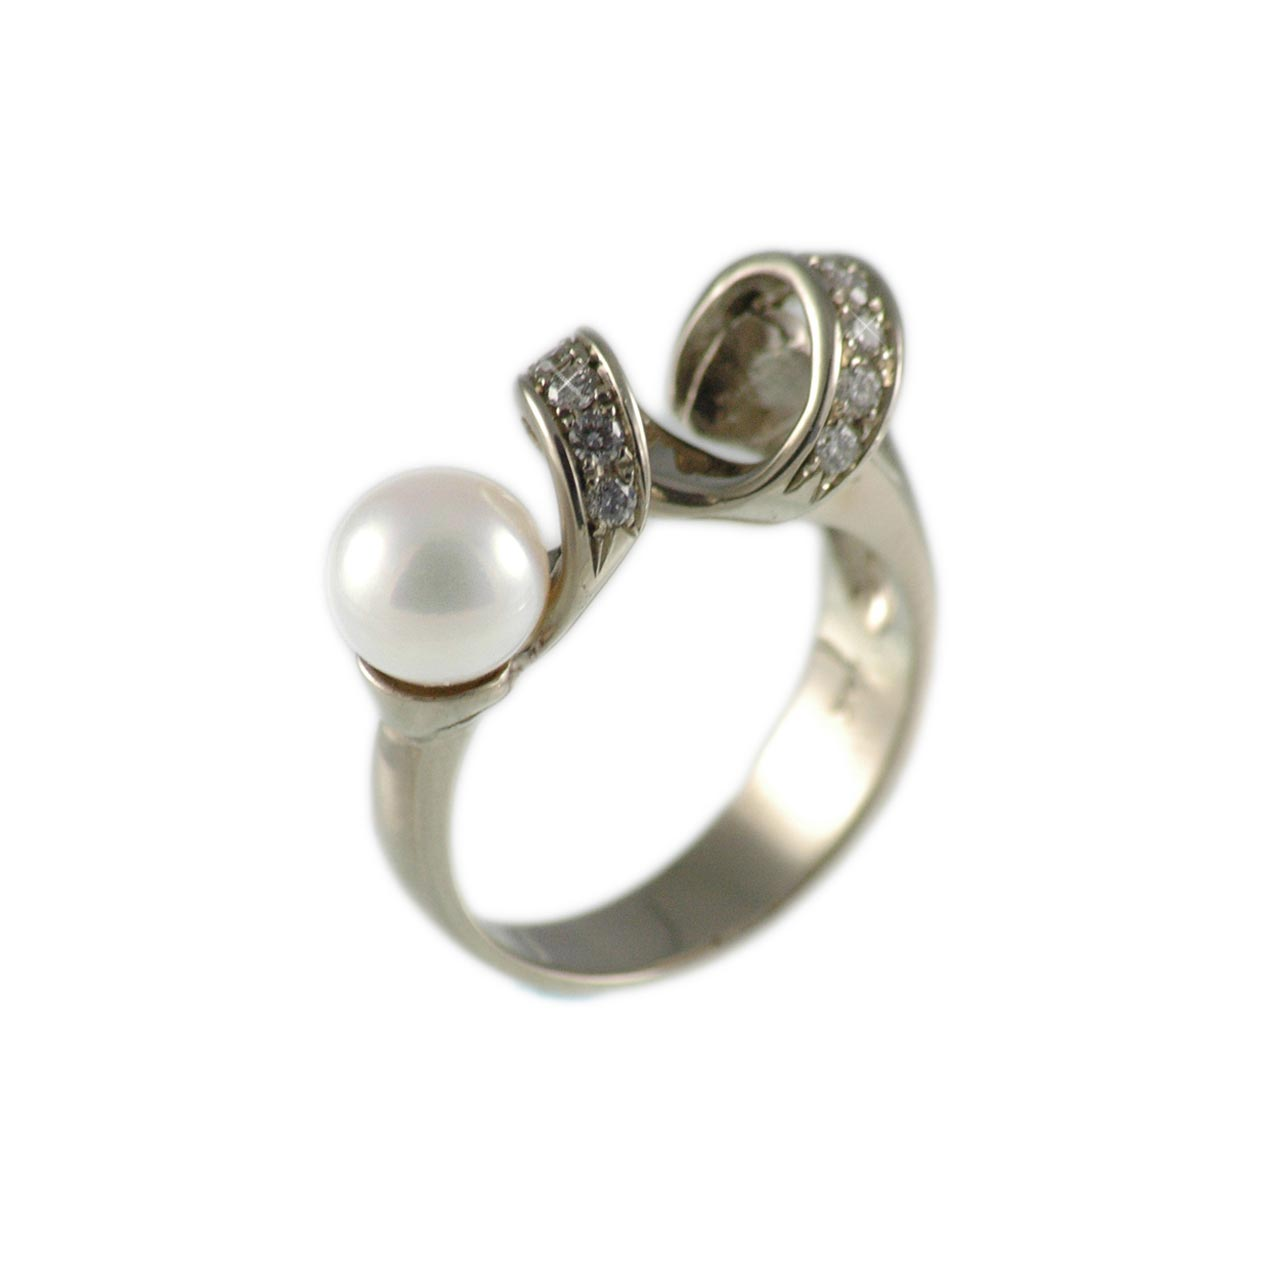 South sea pearl ring 1